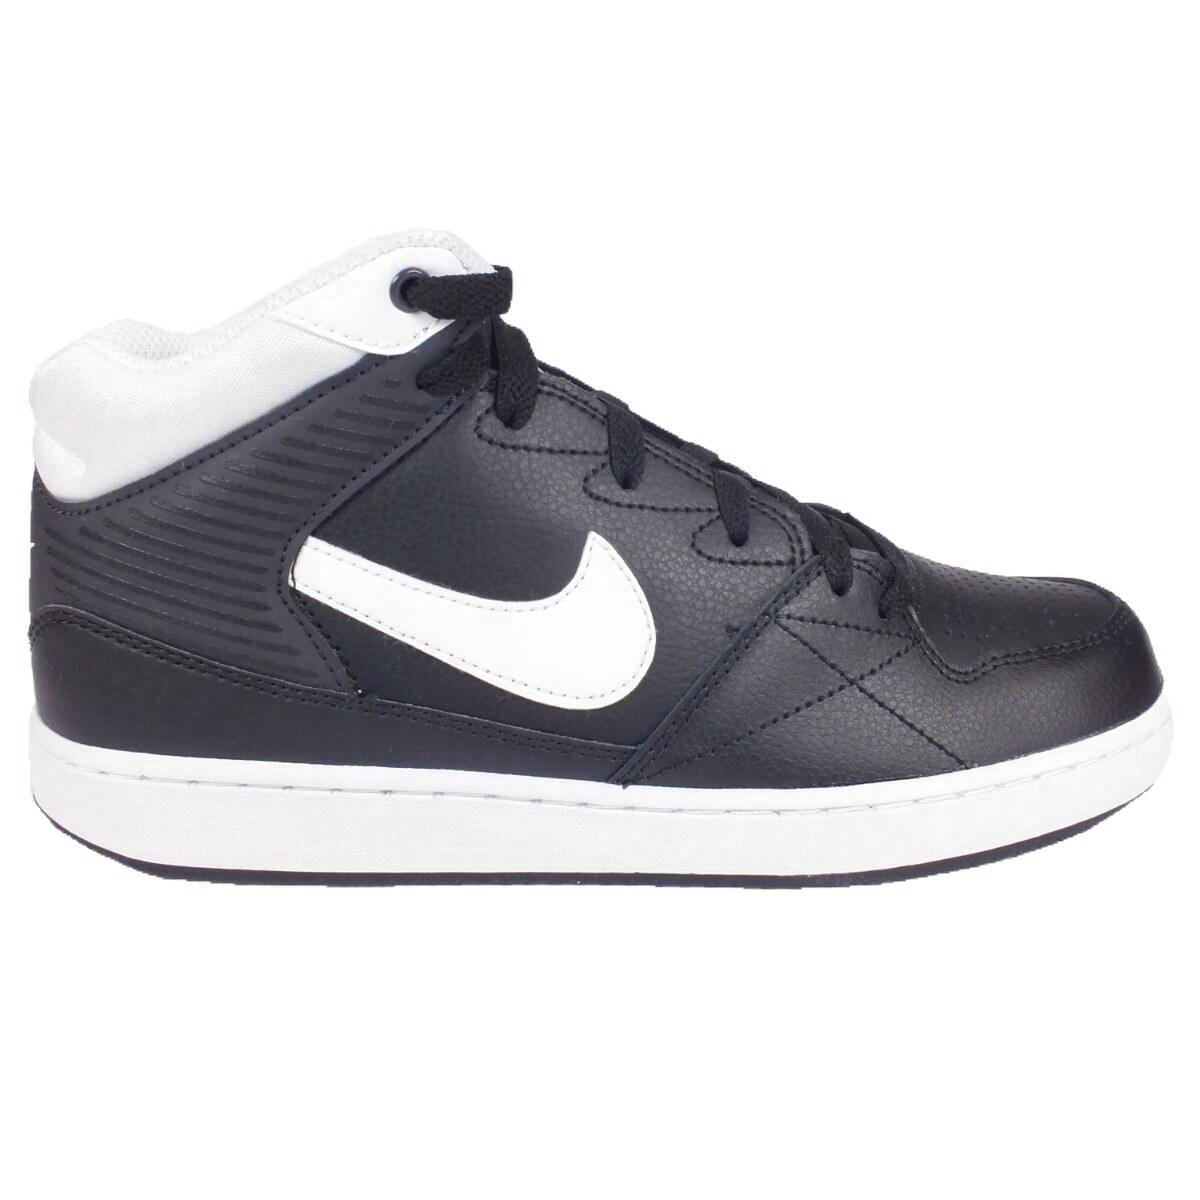 nike priority mid herren schuhe sneaker high top sneaker. Black Bedroom Furniture Sets. Home Design Ideas